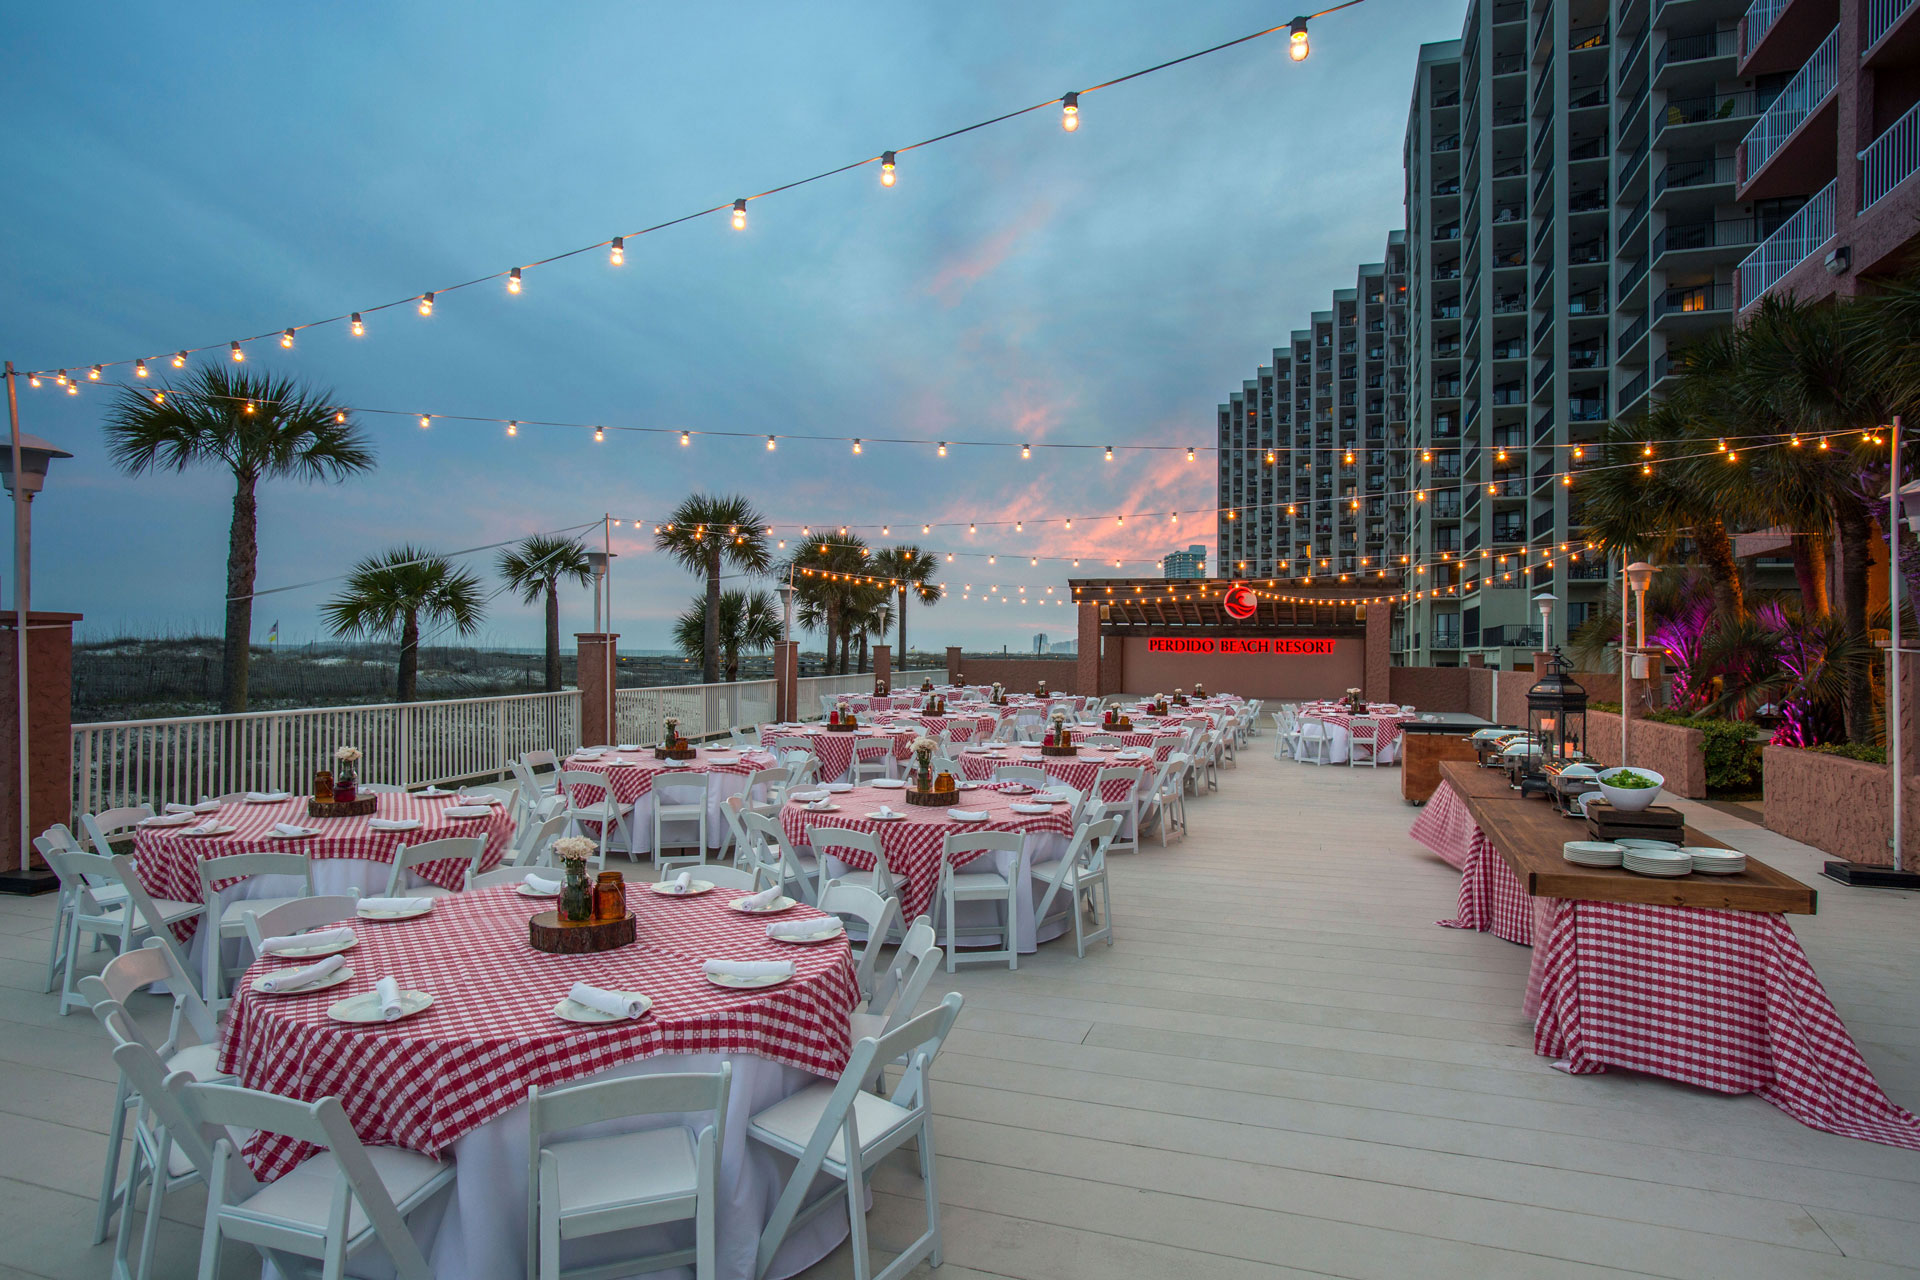 outdoor venue with red checkered decor at sunset